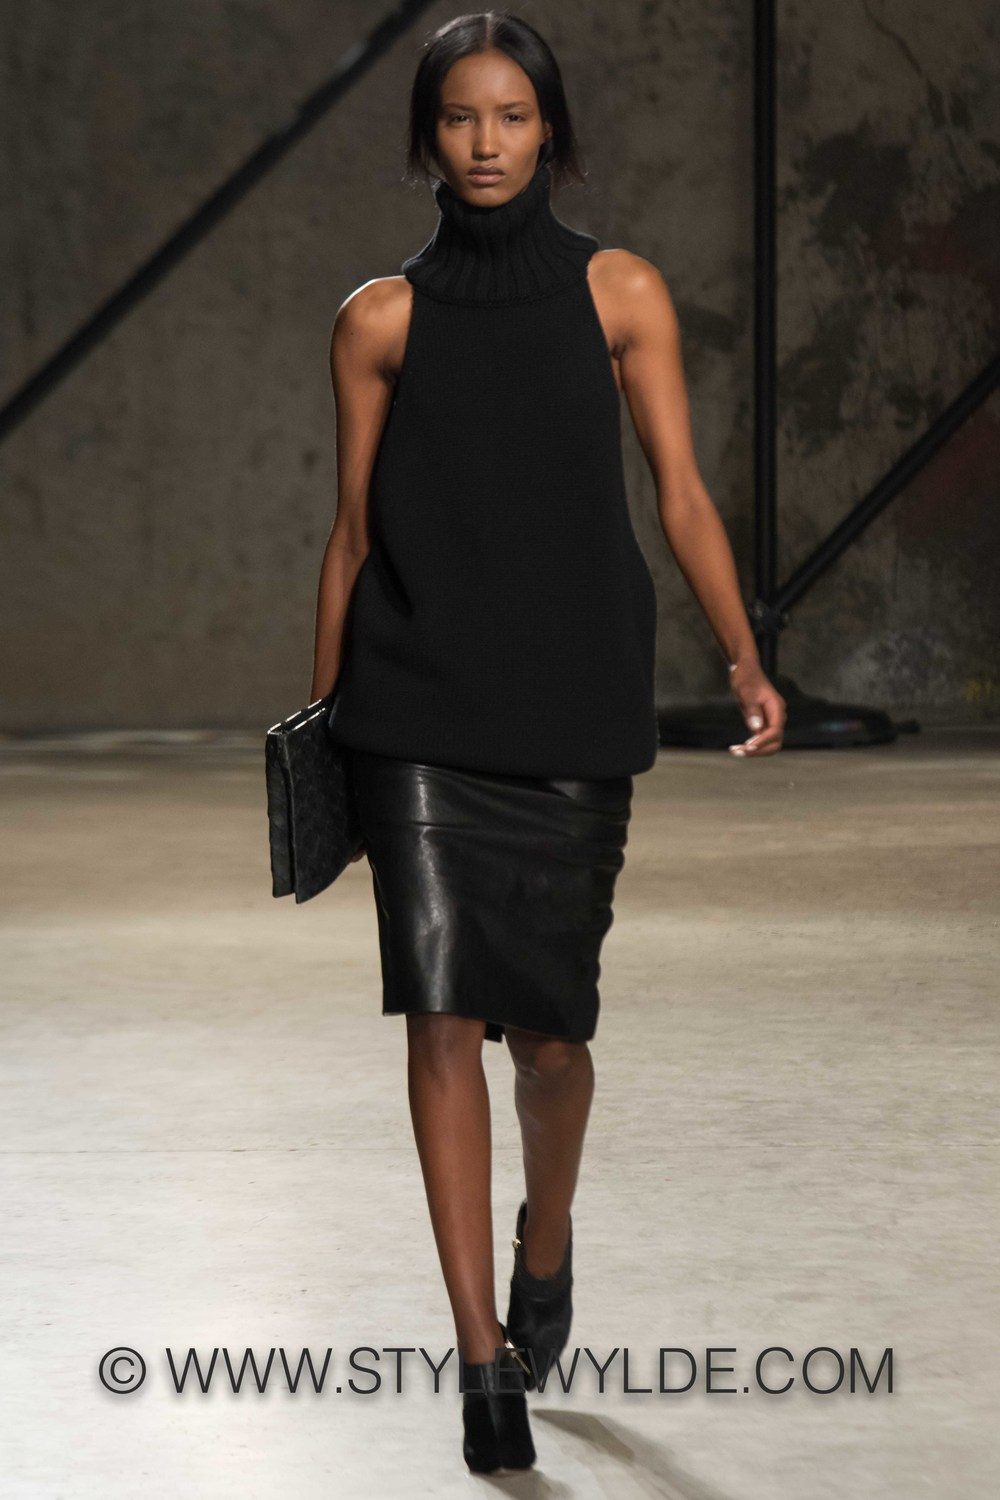 stylewylde_sally_lapointe_fw_2014-10.jpg